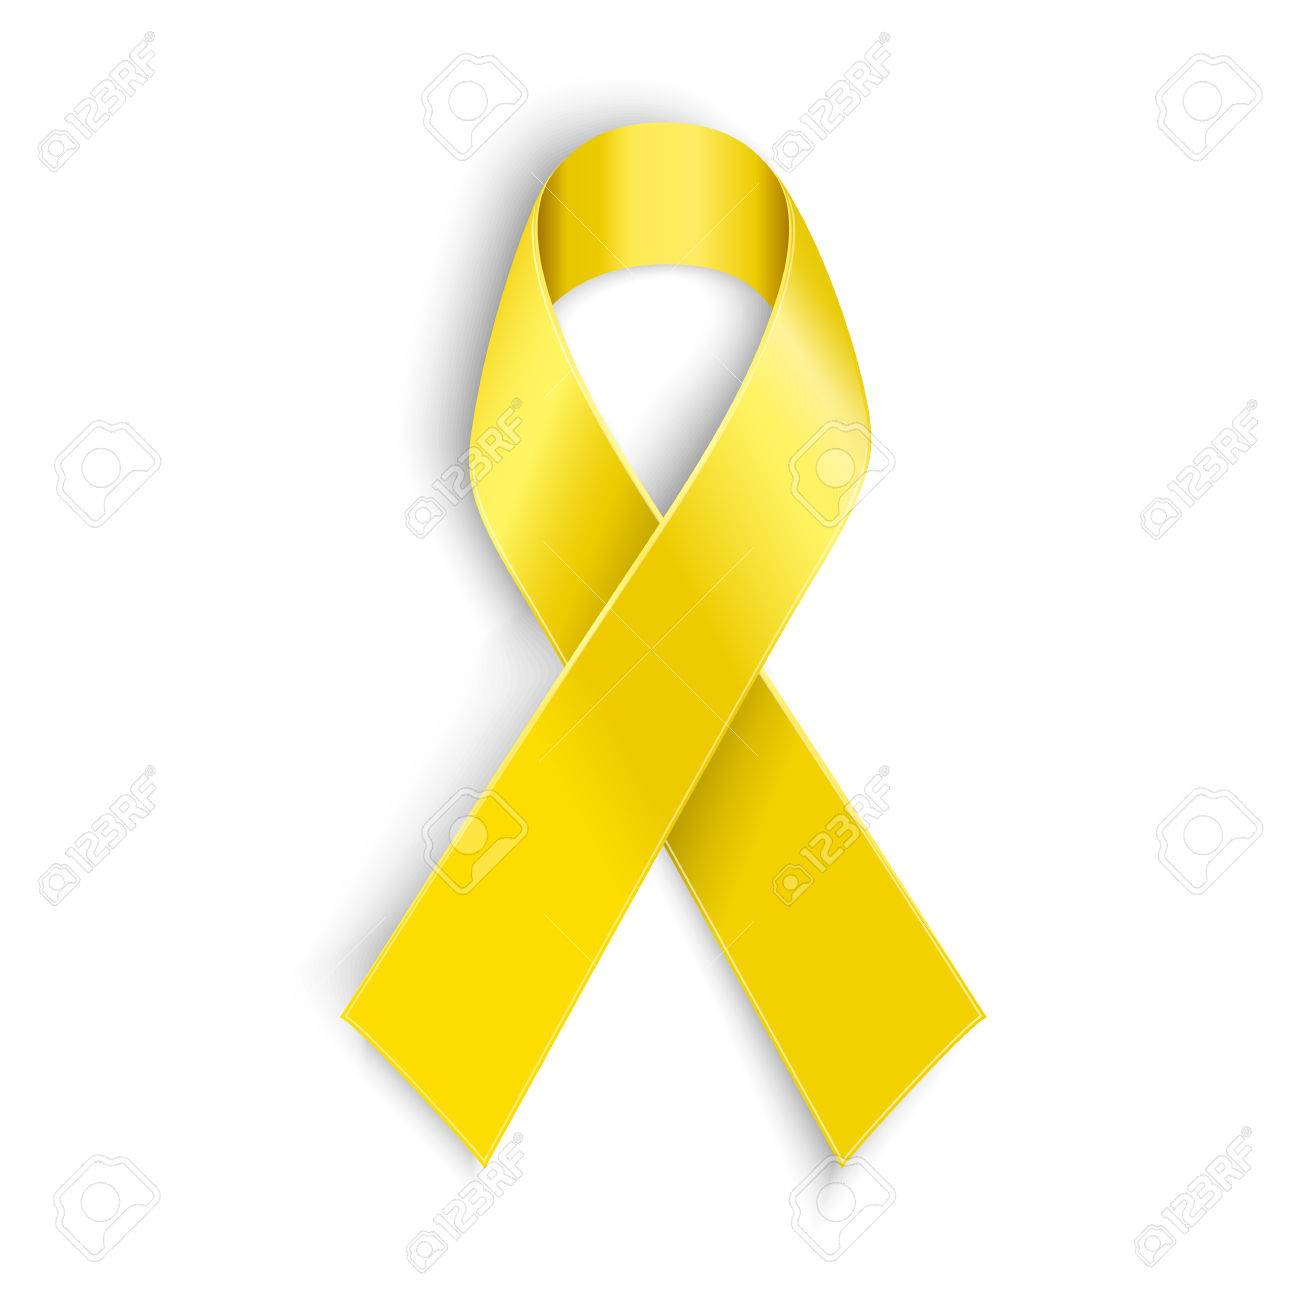 Vector Yellow Awareness Ribbon On White Background Bone Cancer And Troops Support Symbol Illustration